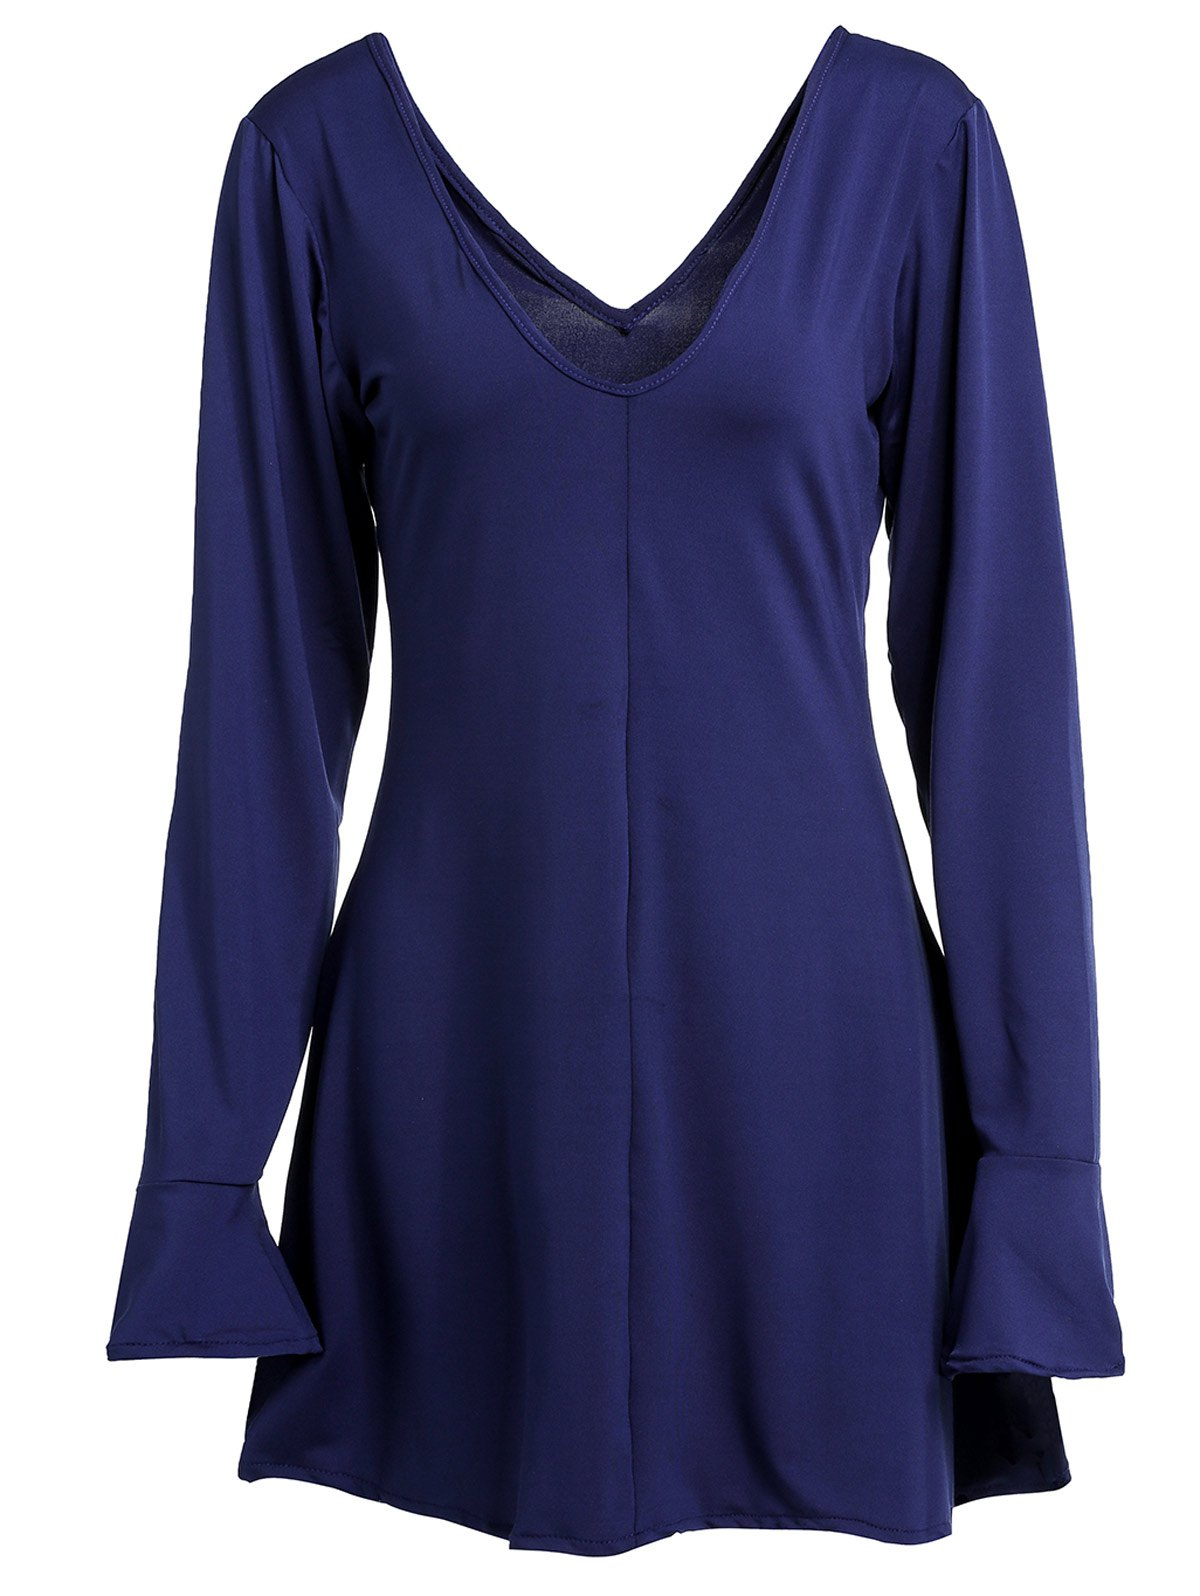 Sexy Deep Blue Plunging Neck Open Back Long Sleeve Dress For Women - DEEP BLUE S